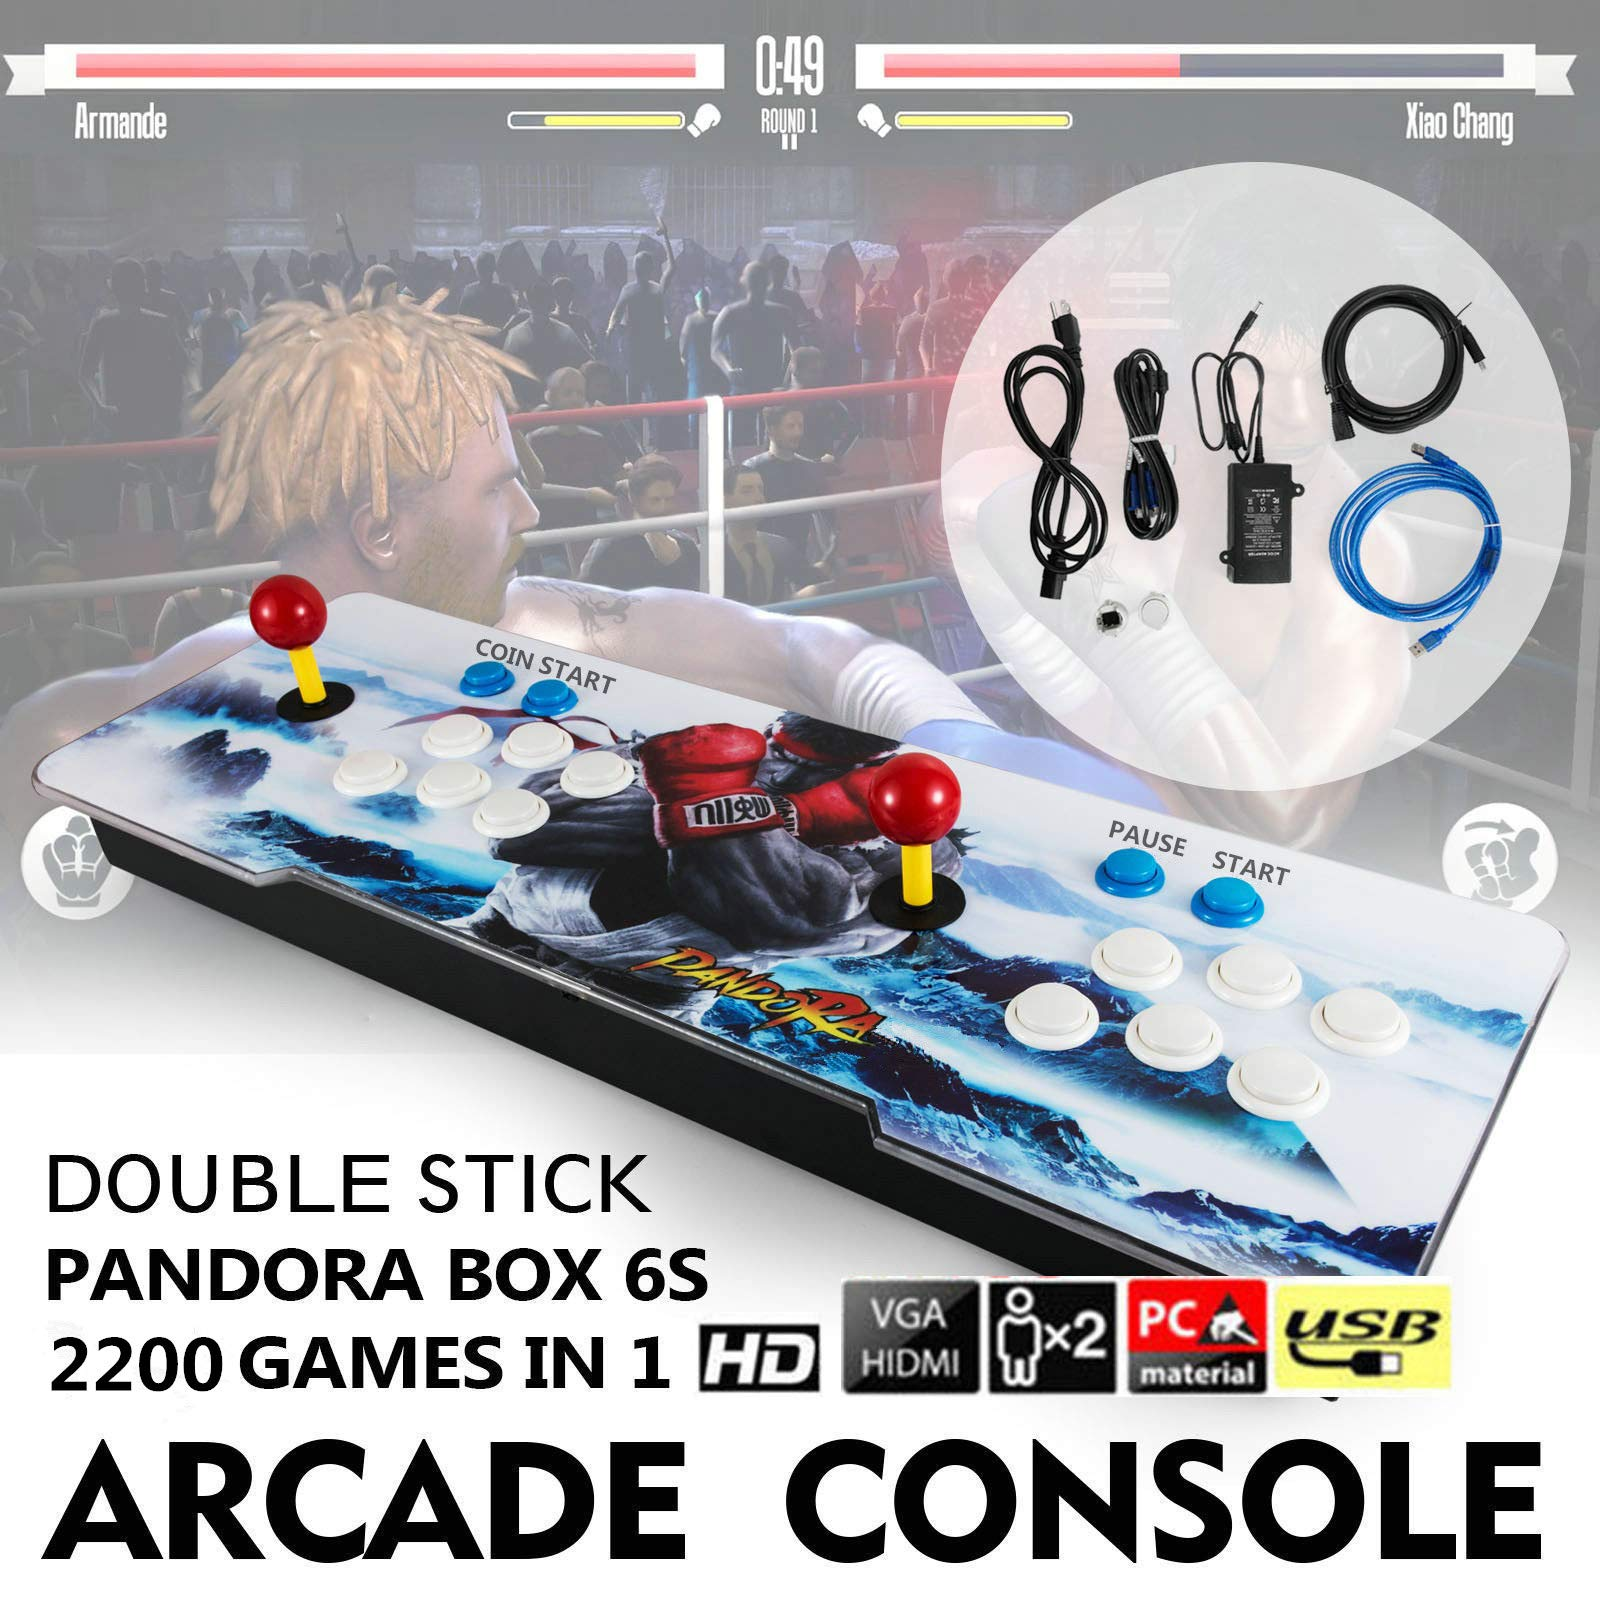 Barbella 2200 HD Arcade Game Console-3D Pandoras Box 6S Arcade Video Game 1080P Game System with 2190 Games Supports 3D Games 1920x1080 Full HD Support TF Card to Expand More Games for PC/TV/PS4 by Barbella (Image #5)